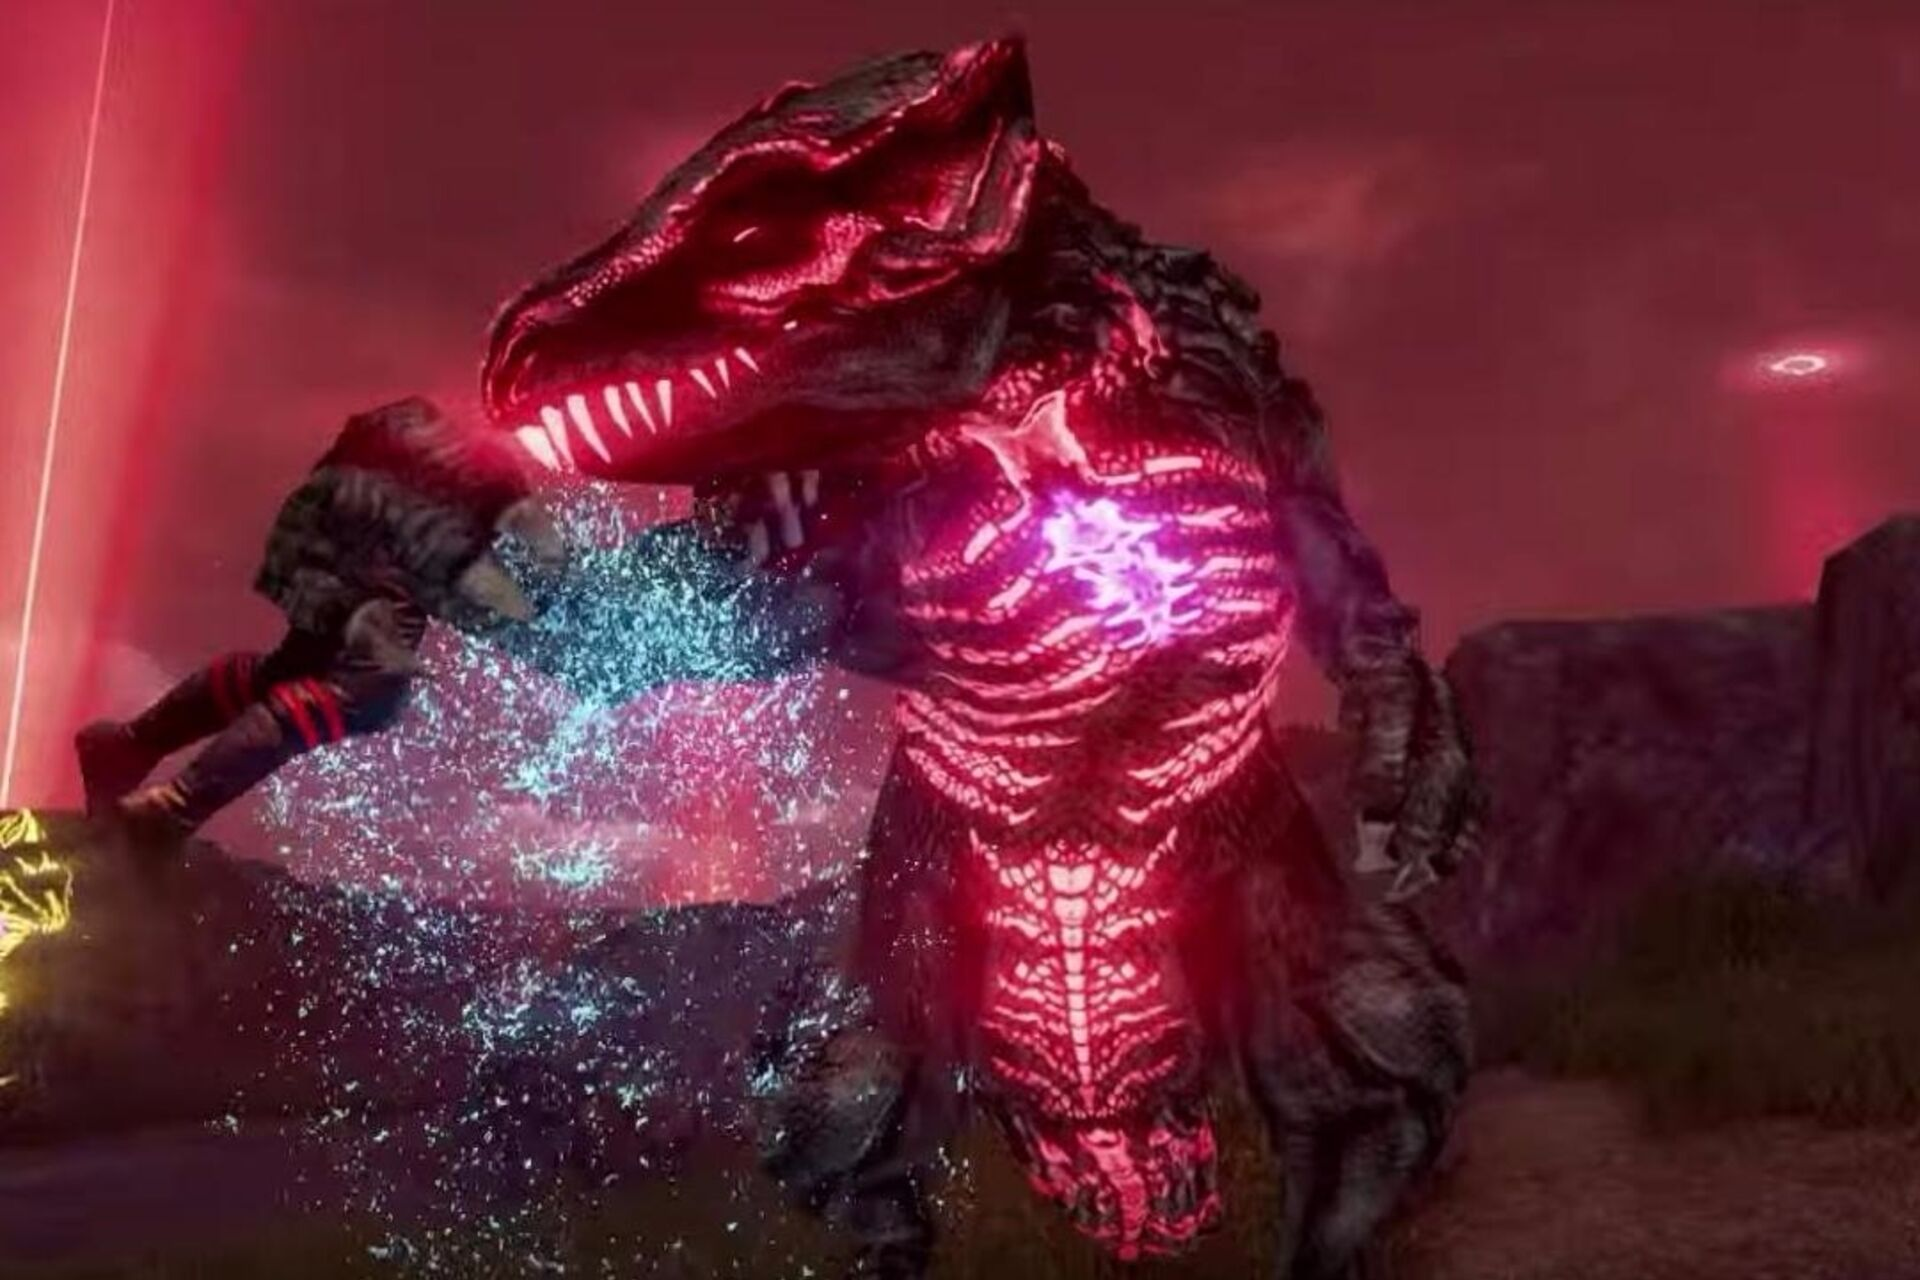 Far Cry 3: Blood Dragon free on PC for a month • Eurogamer net